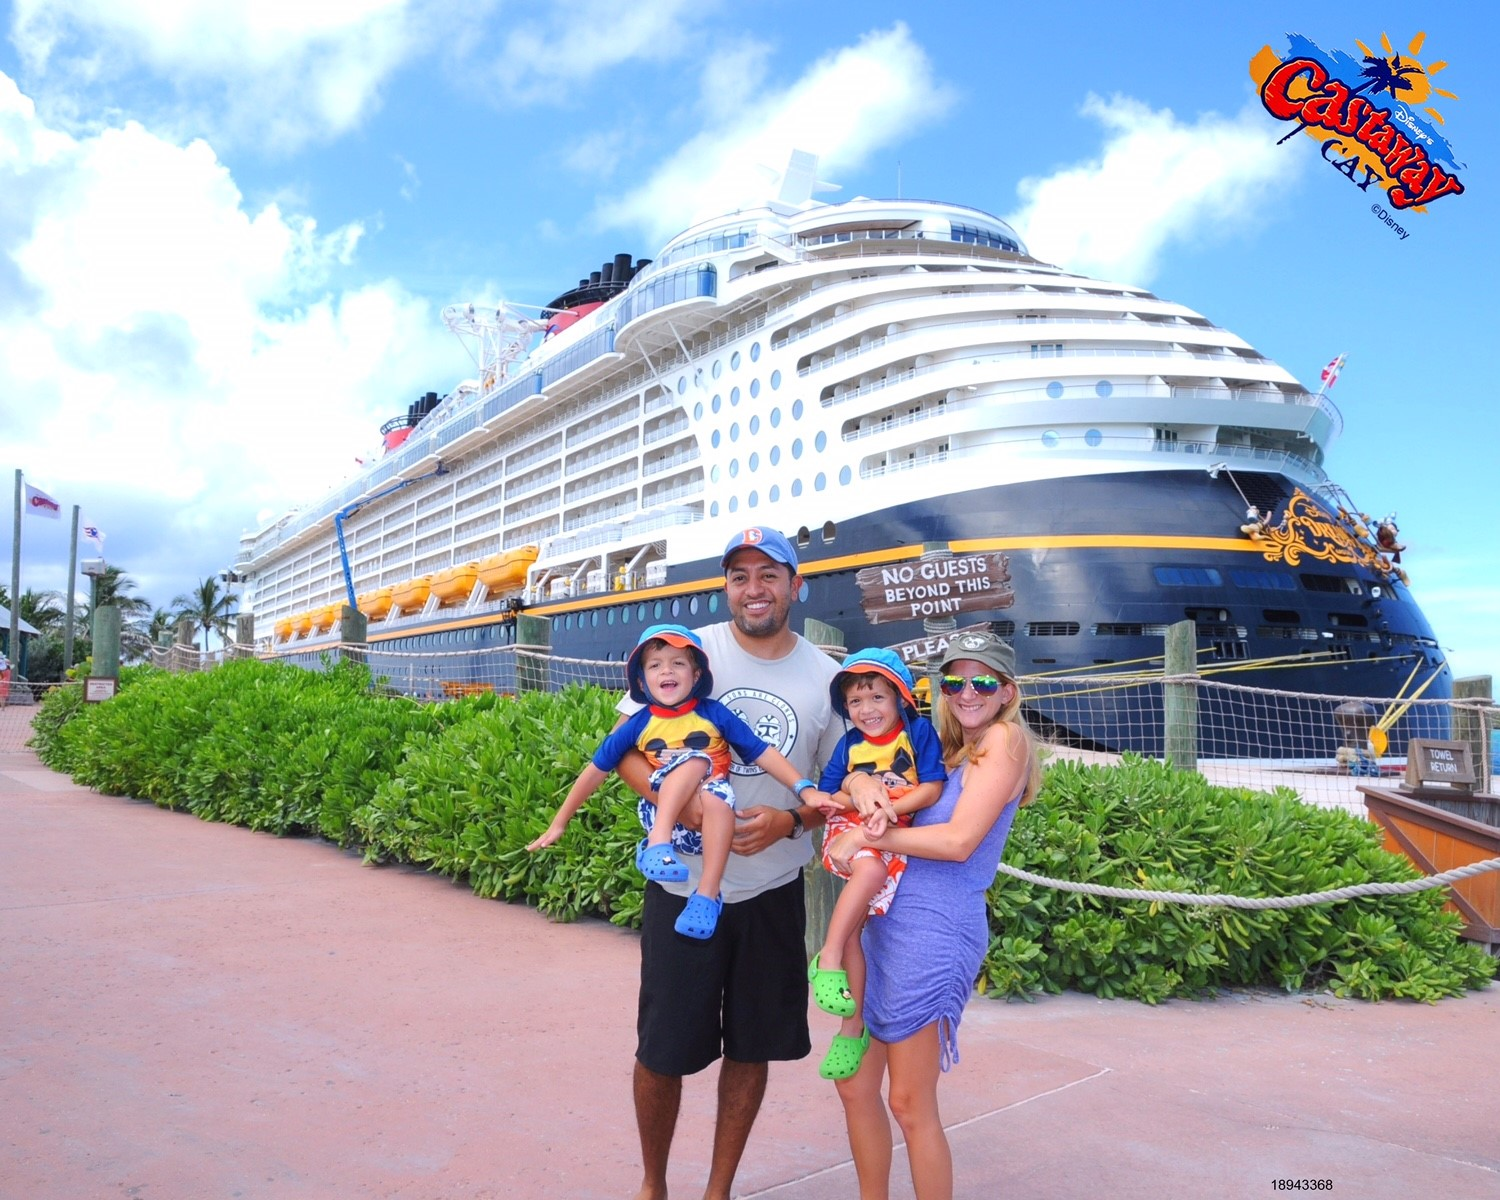 When Tara Met Blog: Cruising On Disney Dream With Preschoolers